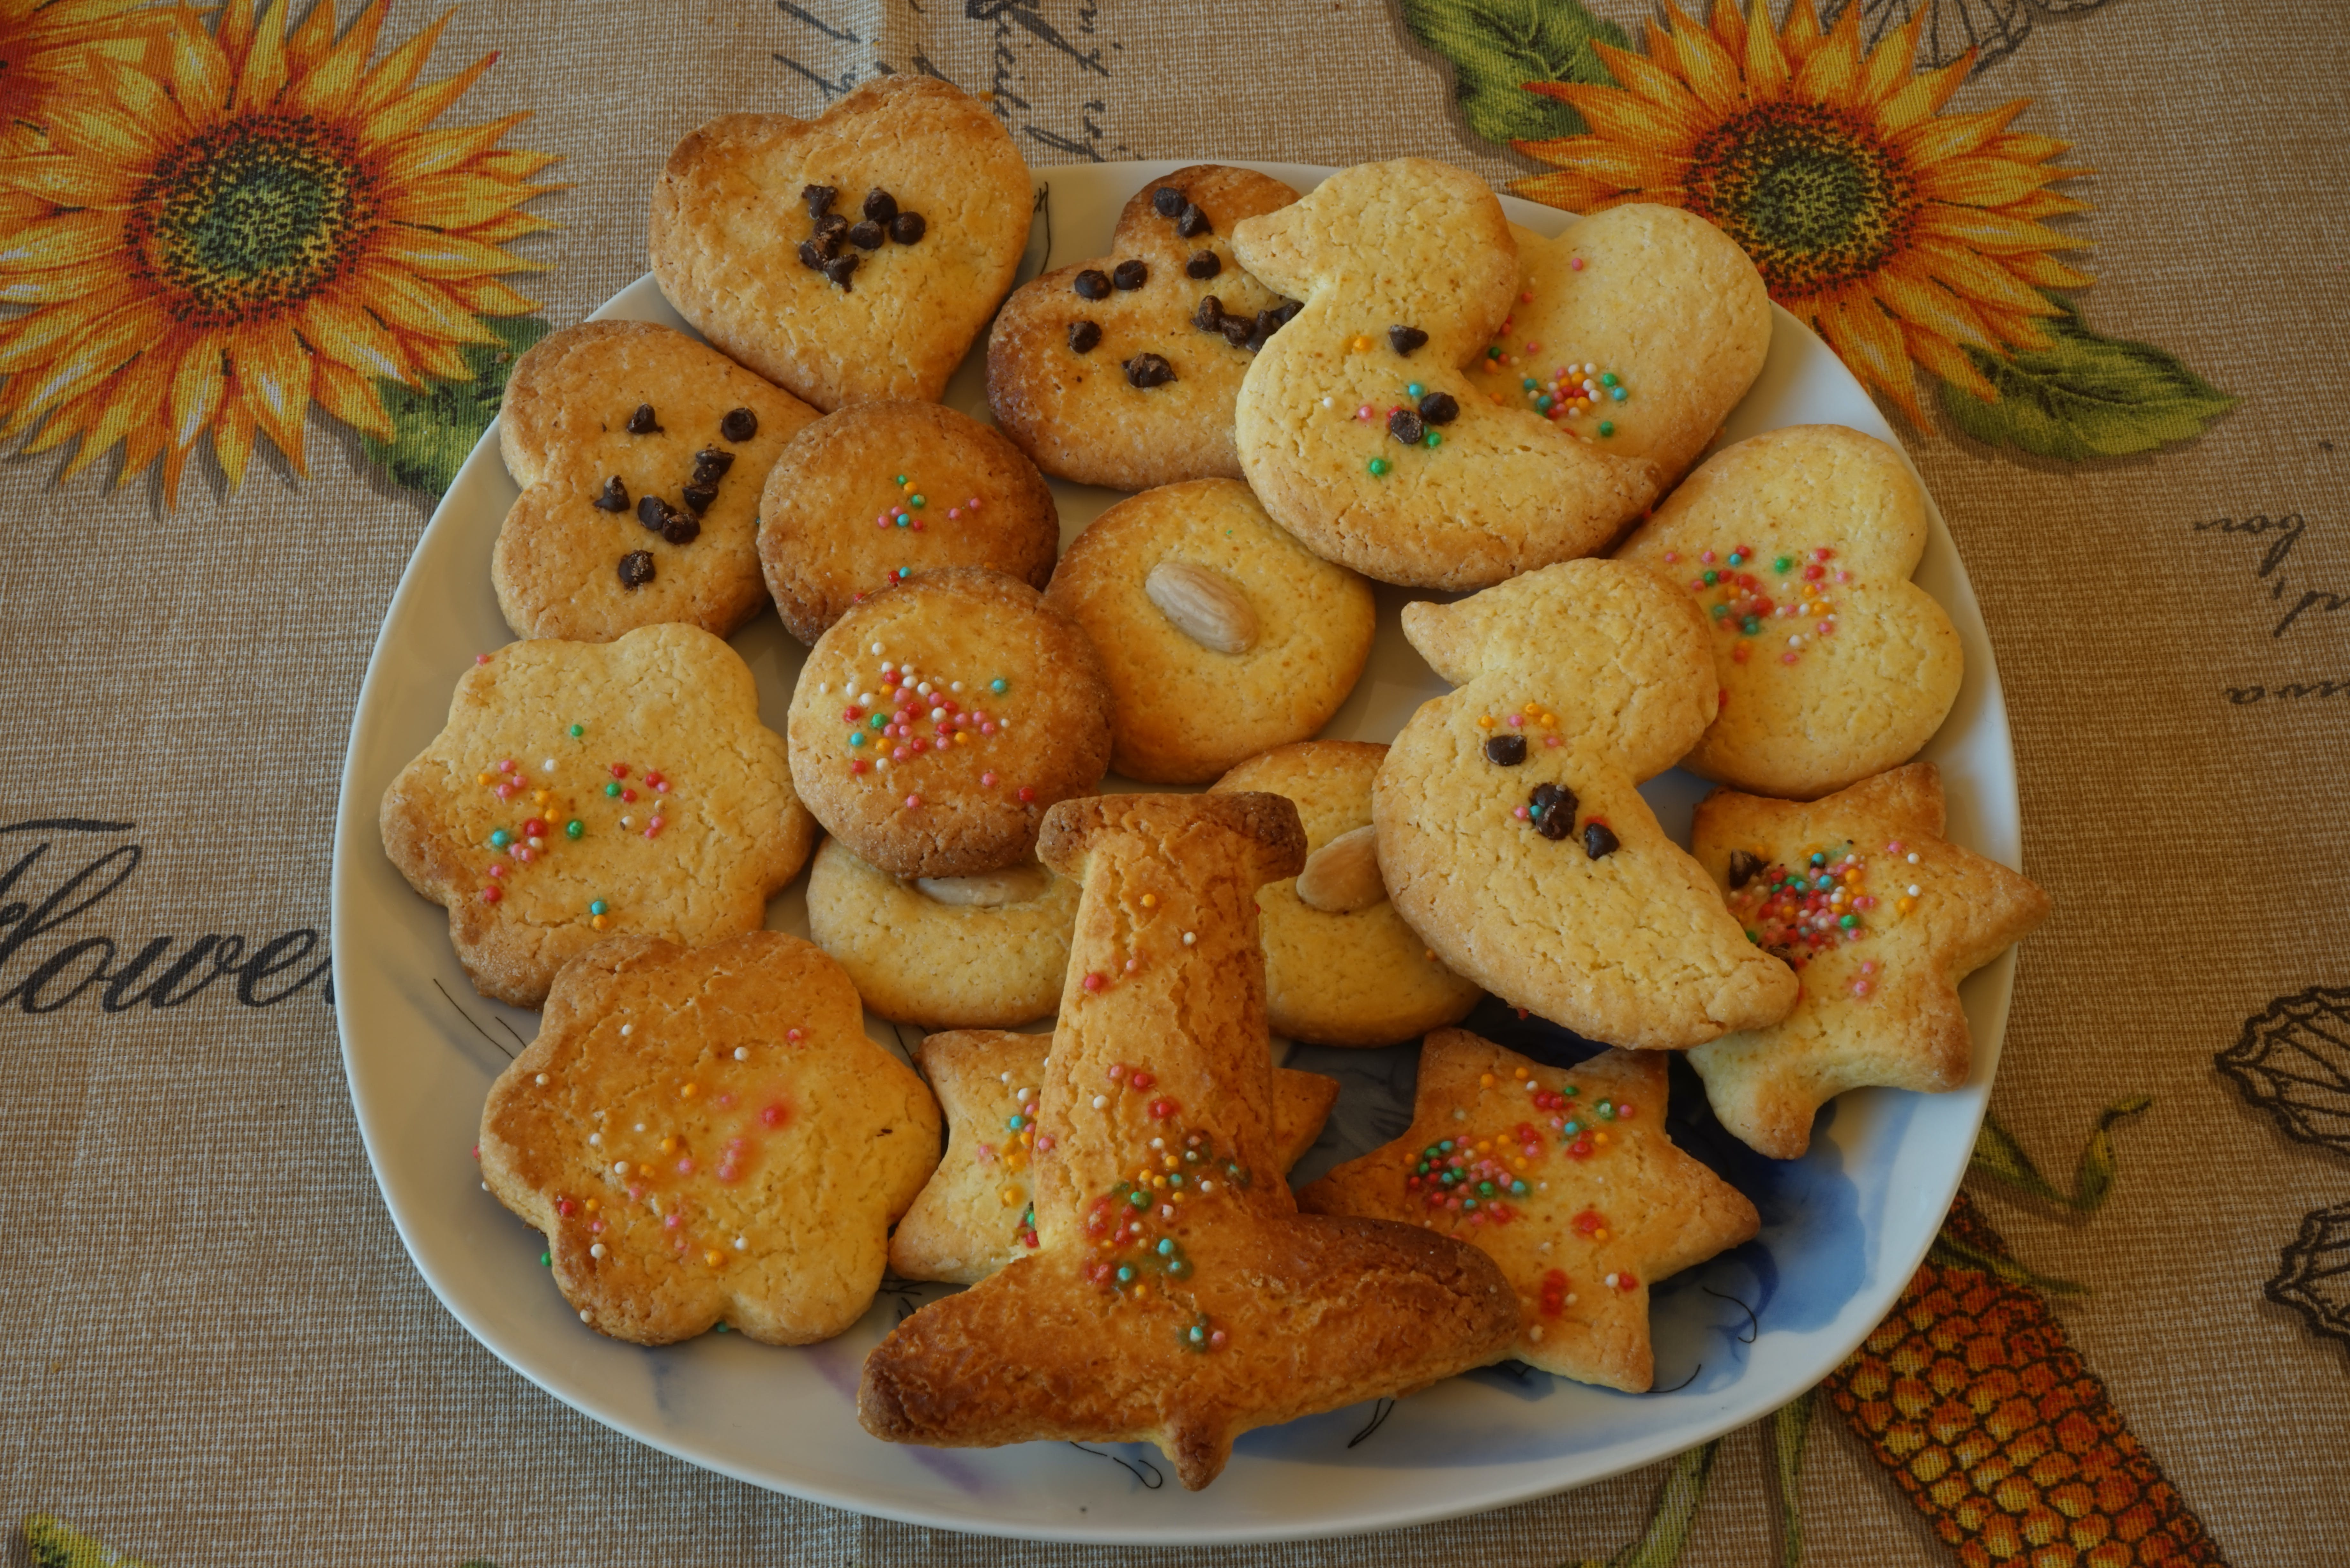 Free stock photo of biscuits, homemade, simple butter biscuits, simple homemade biscuits